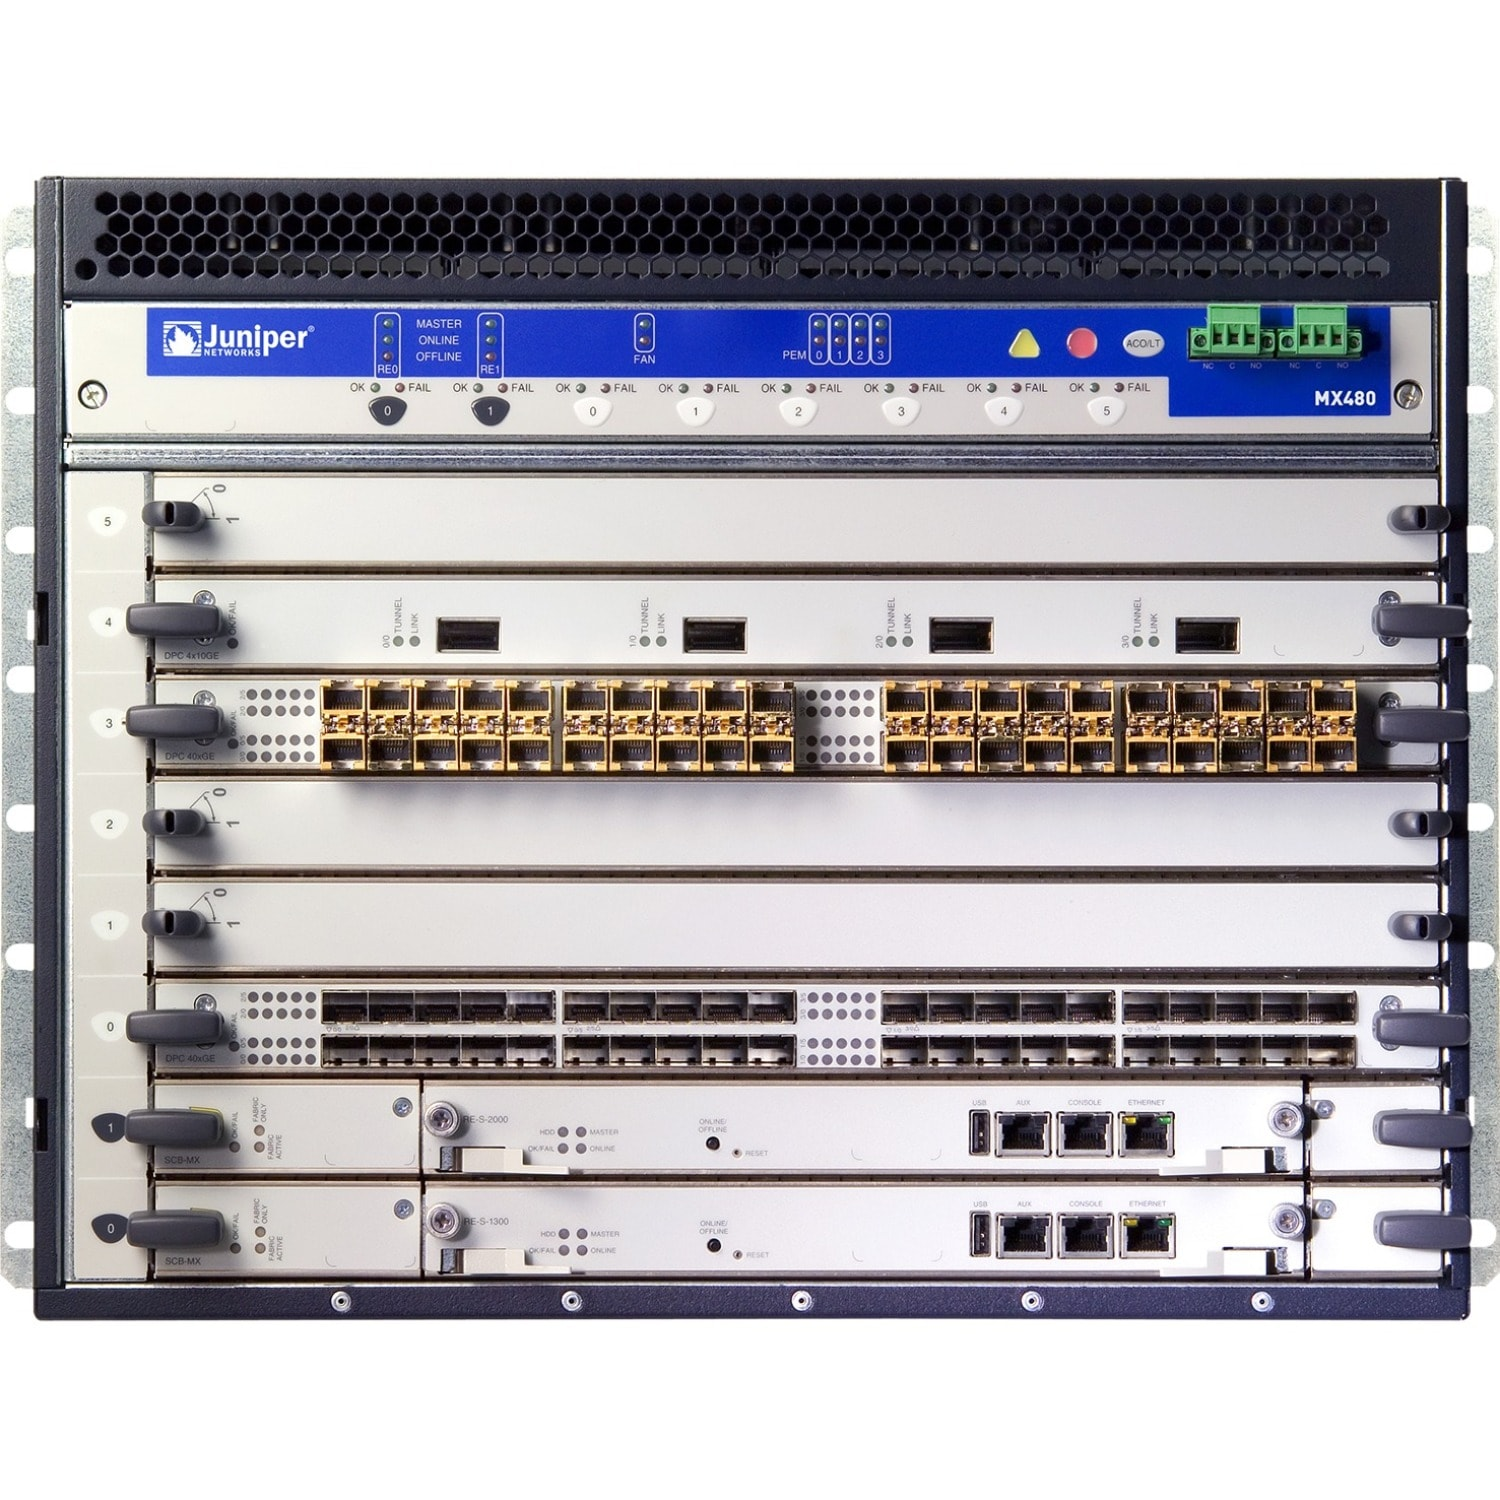 Buy Juniper MX480 Router Chassis | DWM Solutions